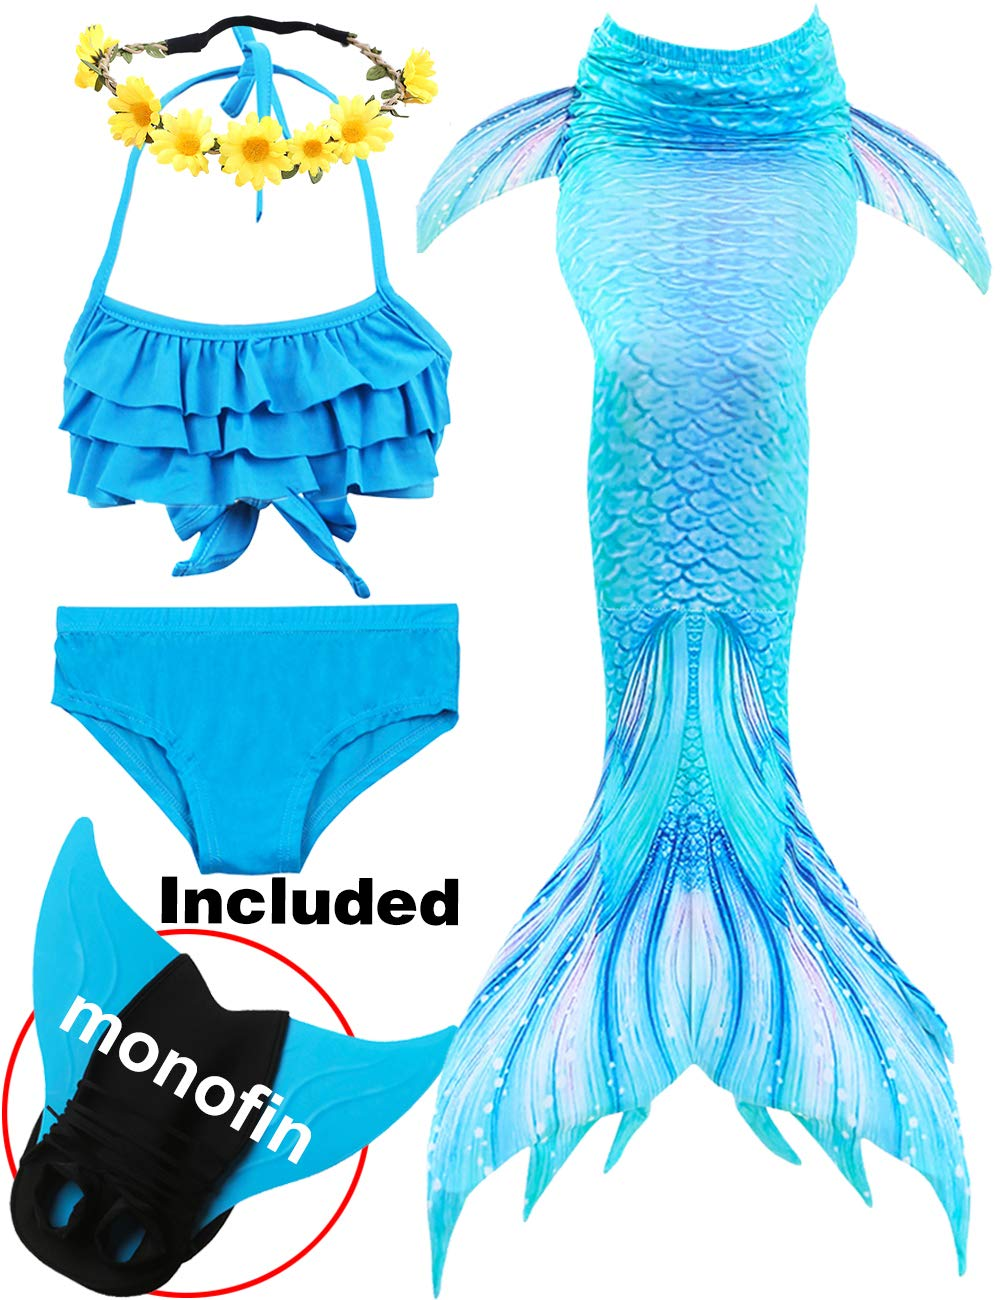 2019 3 Pcs Mermaid Tails for Swimming for Girls Can Add Monofin, Bikini Swimsuit Set Mermaid Tails Birthday Gifts for Kids